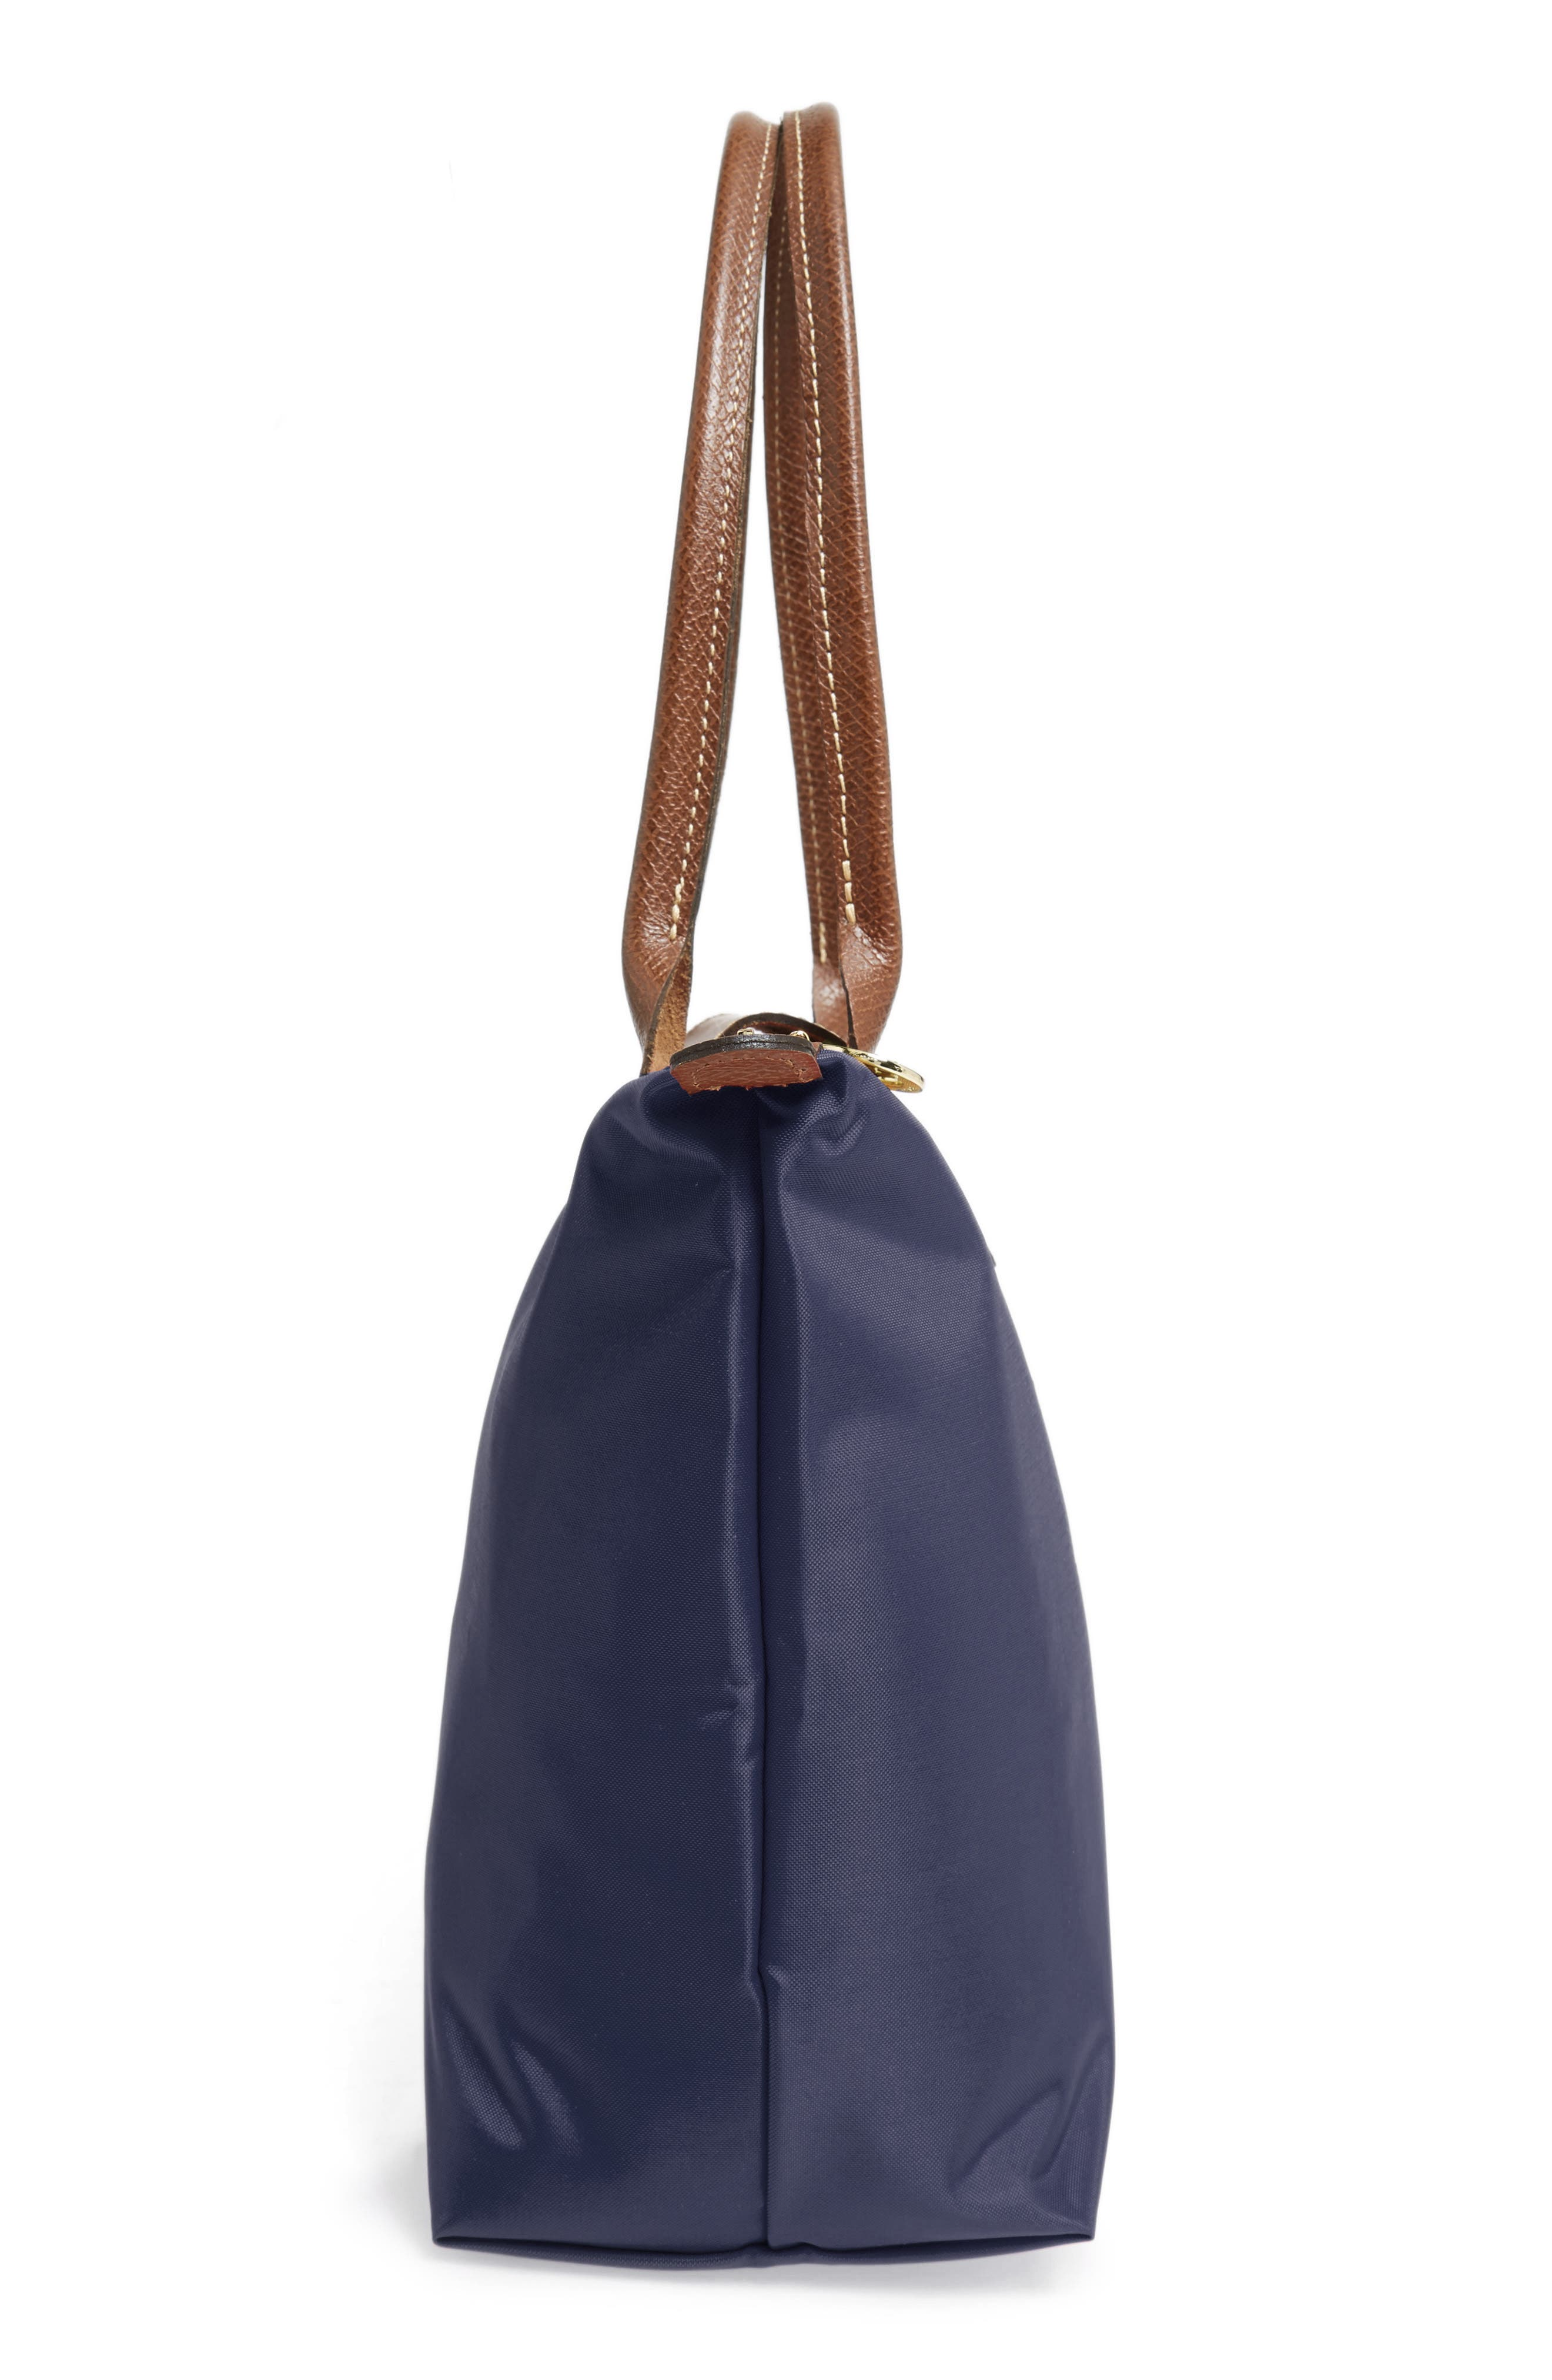 LONGCHAMP, 'Small Le Pliage' Tote, Alternate thumbnail 5, color, NEW NAVY